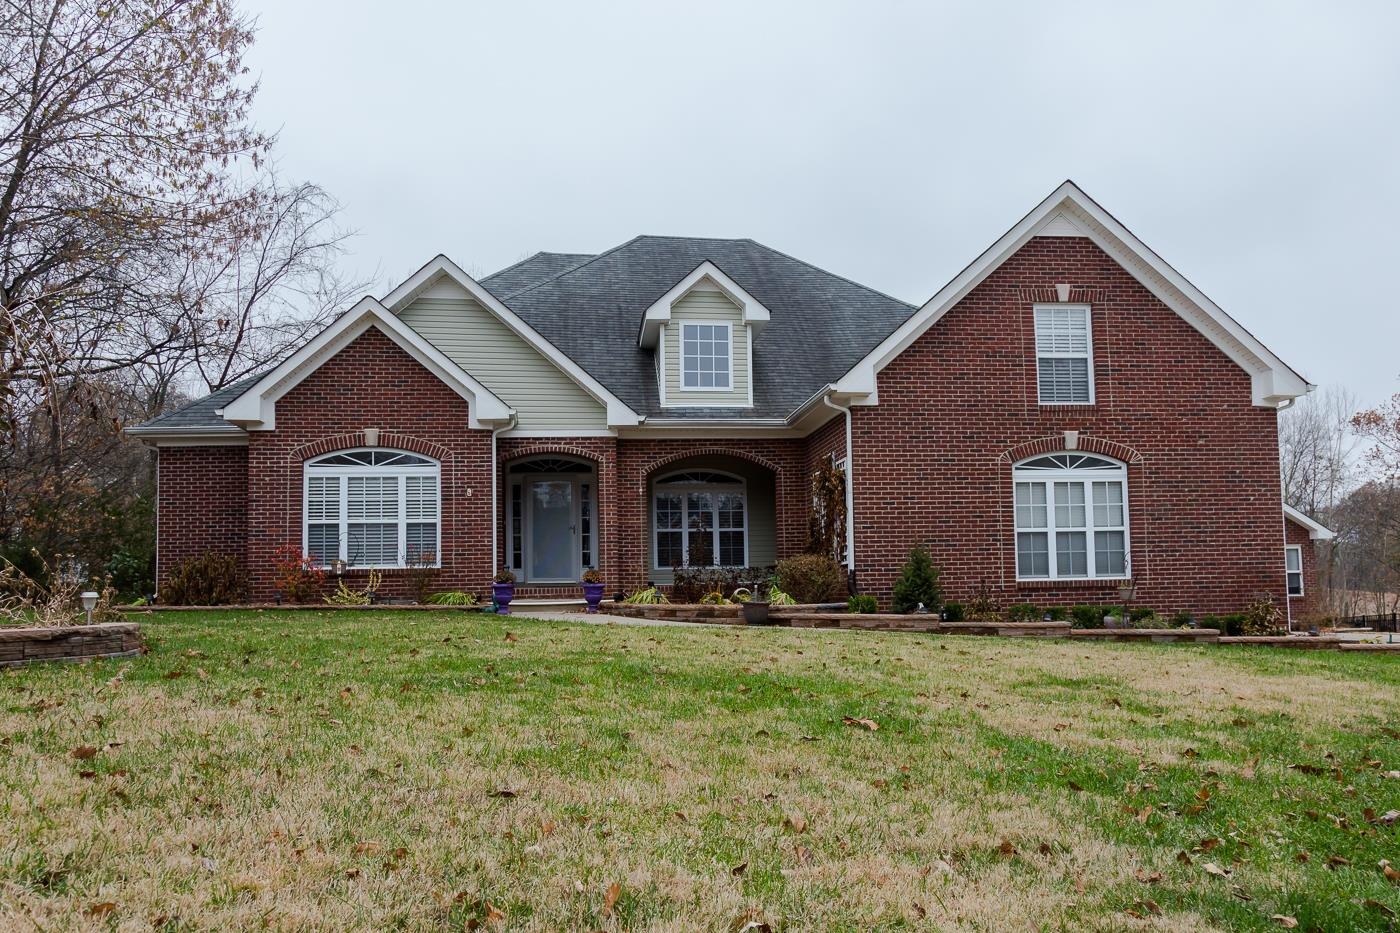 808 Brooke Valley Trce, Clarksville, Tennessee